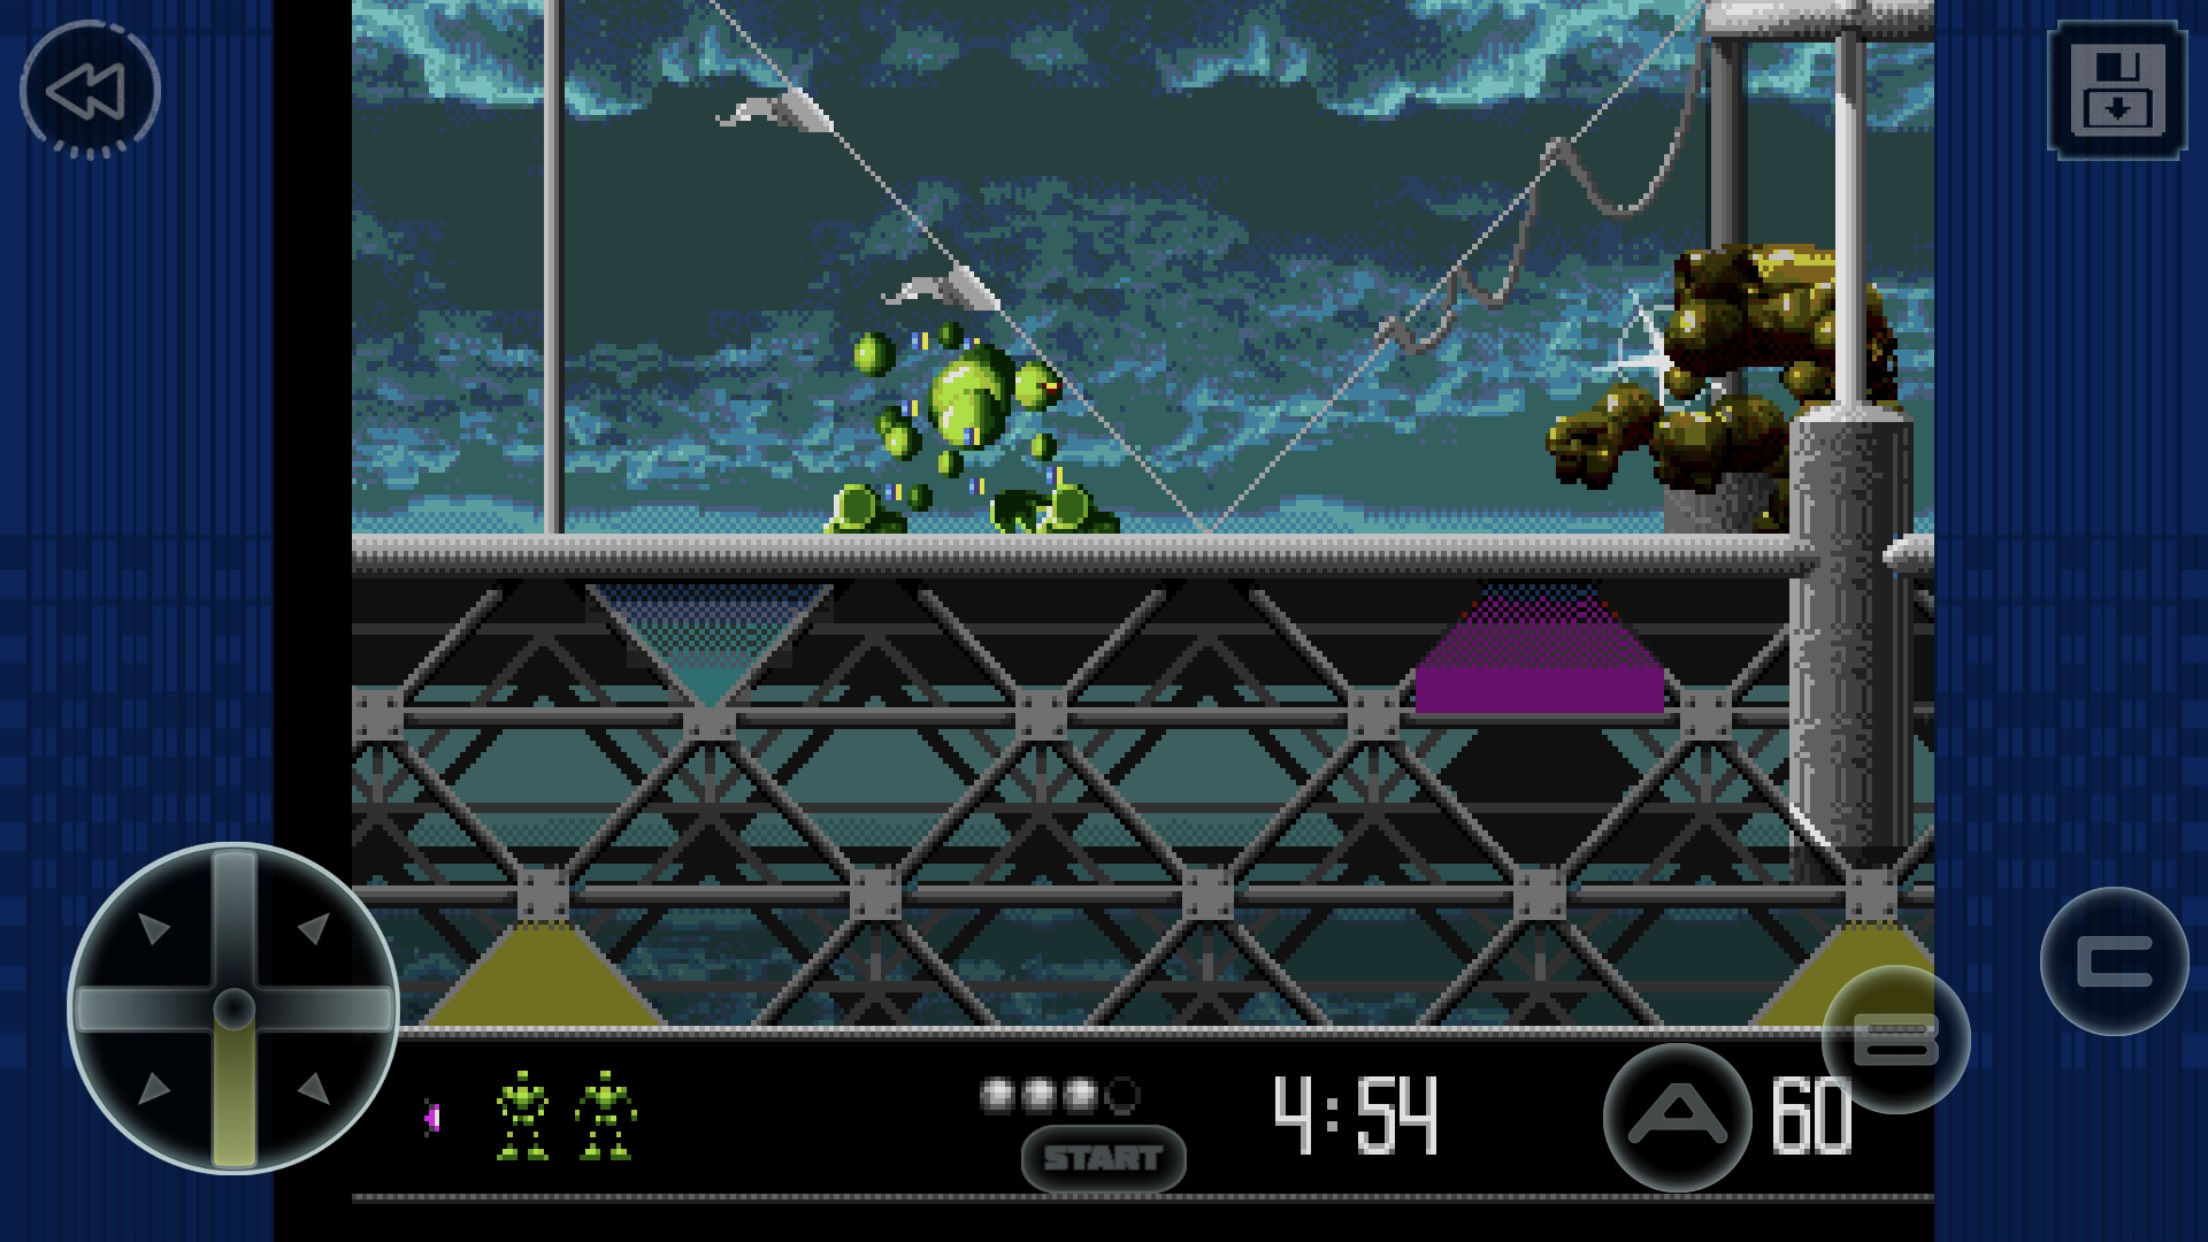 Vectorman, Possibly The Best Genesis Game, Is Now Available On Sega Forever